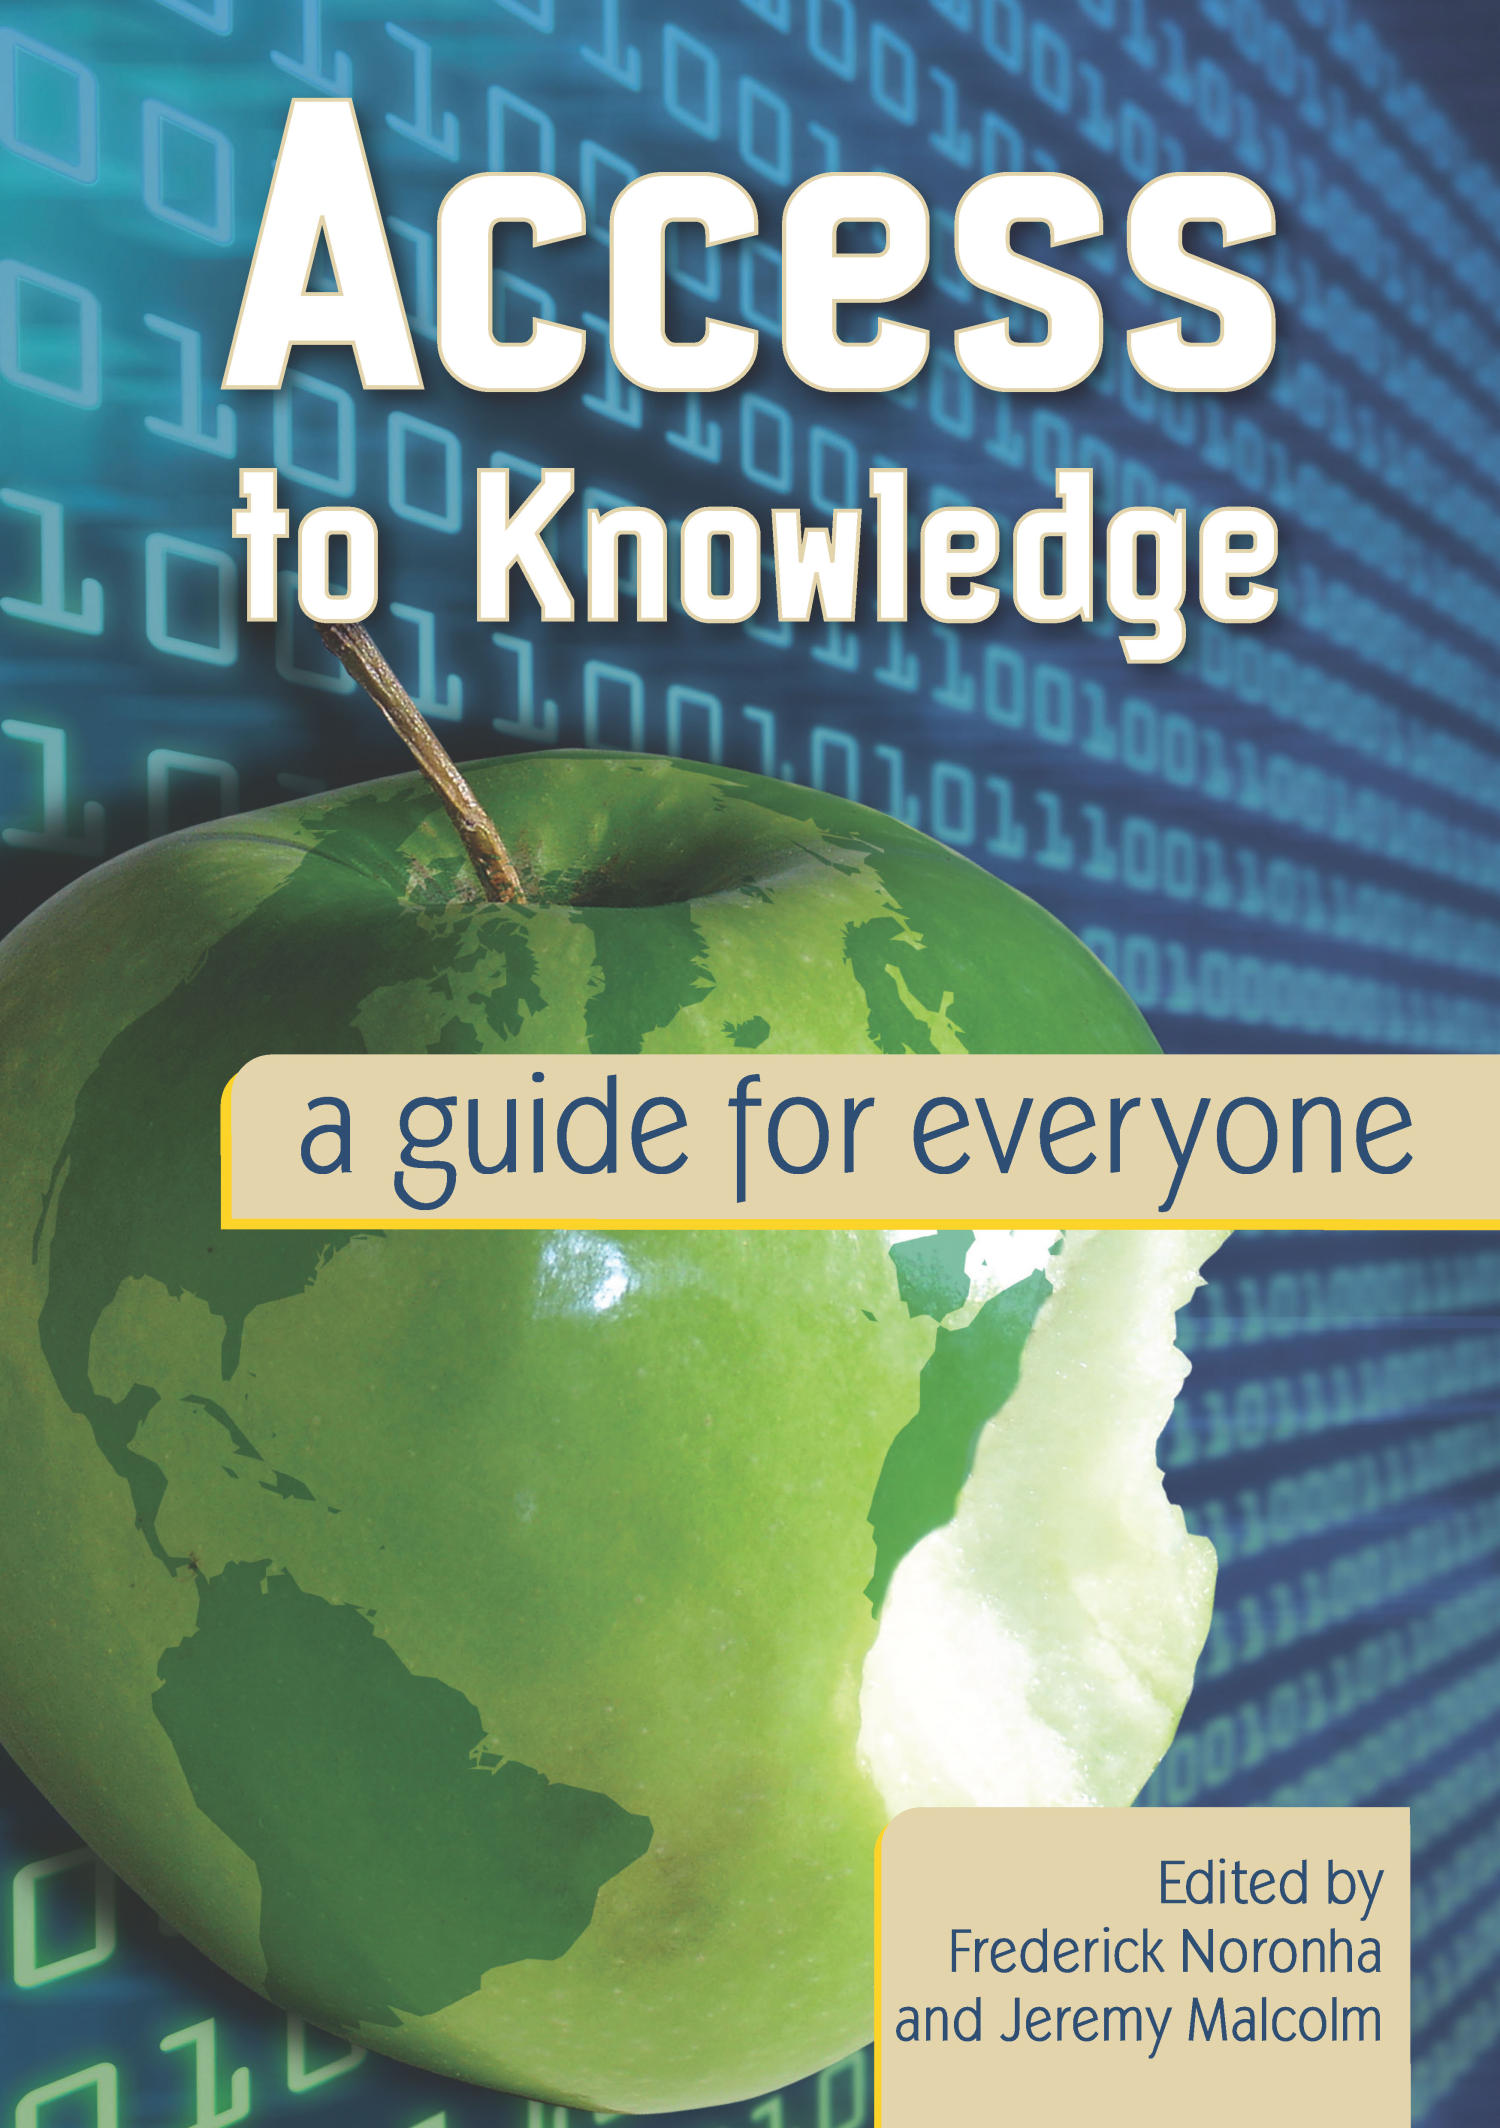 Access to Knowledge: a guide for everyone                                                                                                      Front Cover